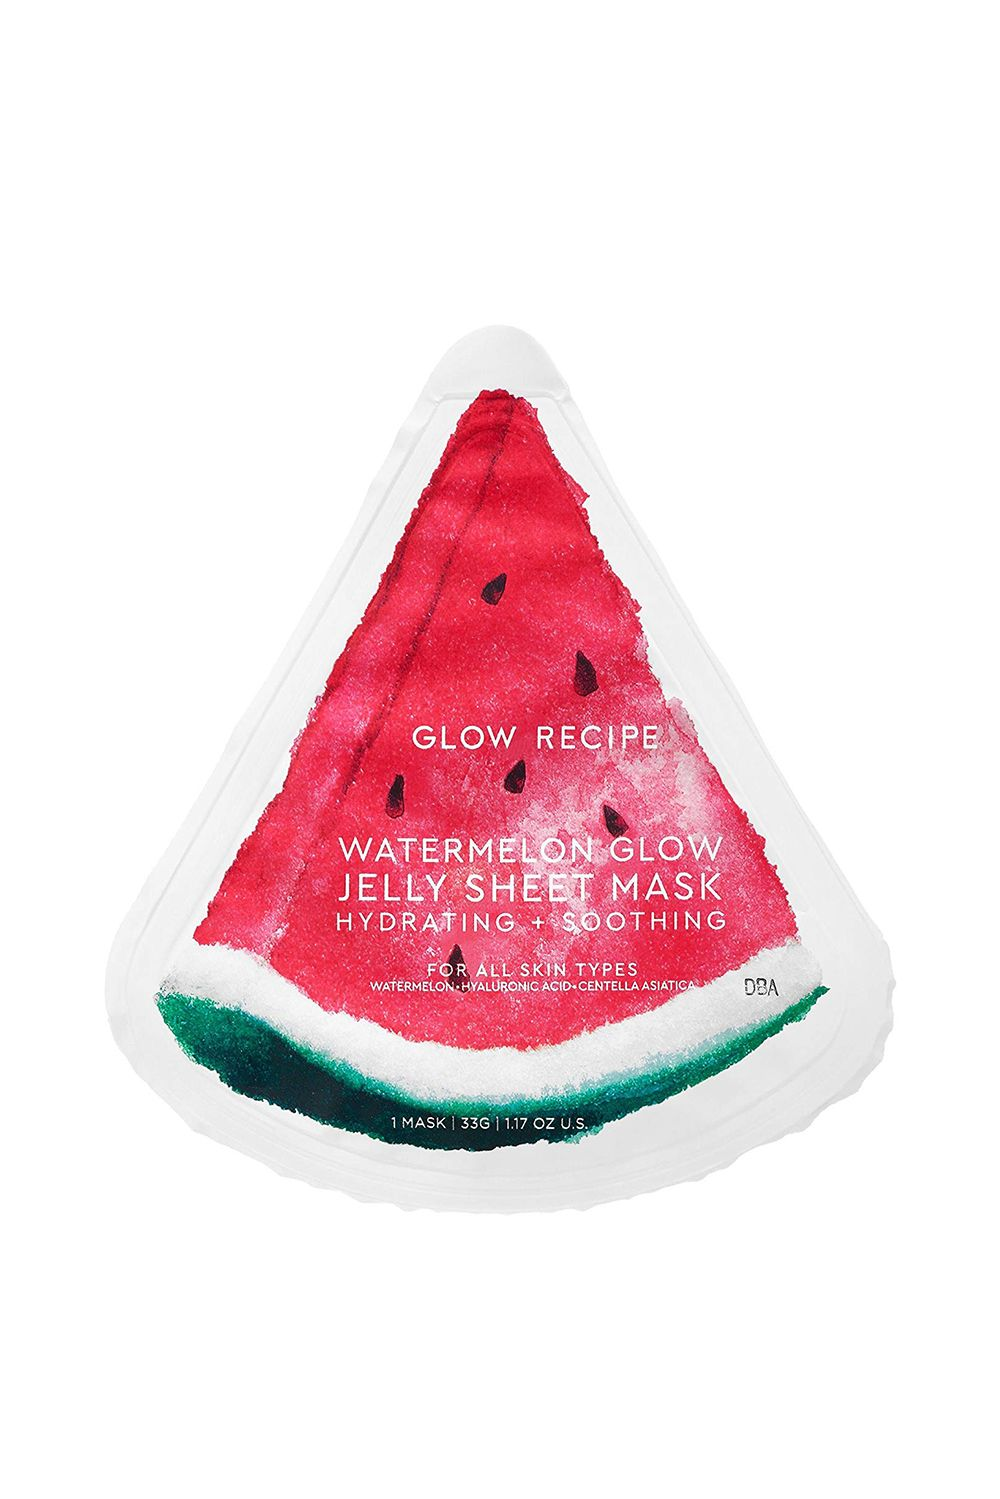 Glow Recipe Watermelon Glow Jelly Sheet Mask Glow Recipe Watermelon Glow Jelly Sheet Mask, $8 SHOP IT You'll obsess over the feeling of this oil-free, jelly hydrogel mask that will juice-up your skin with hydration. Plus, its transparent pink tint is super Instagrammable.